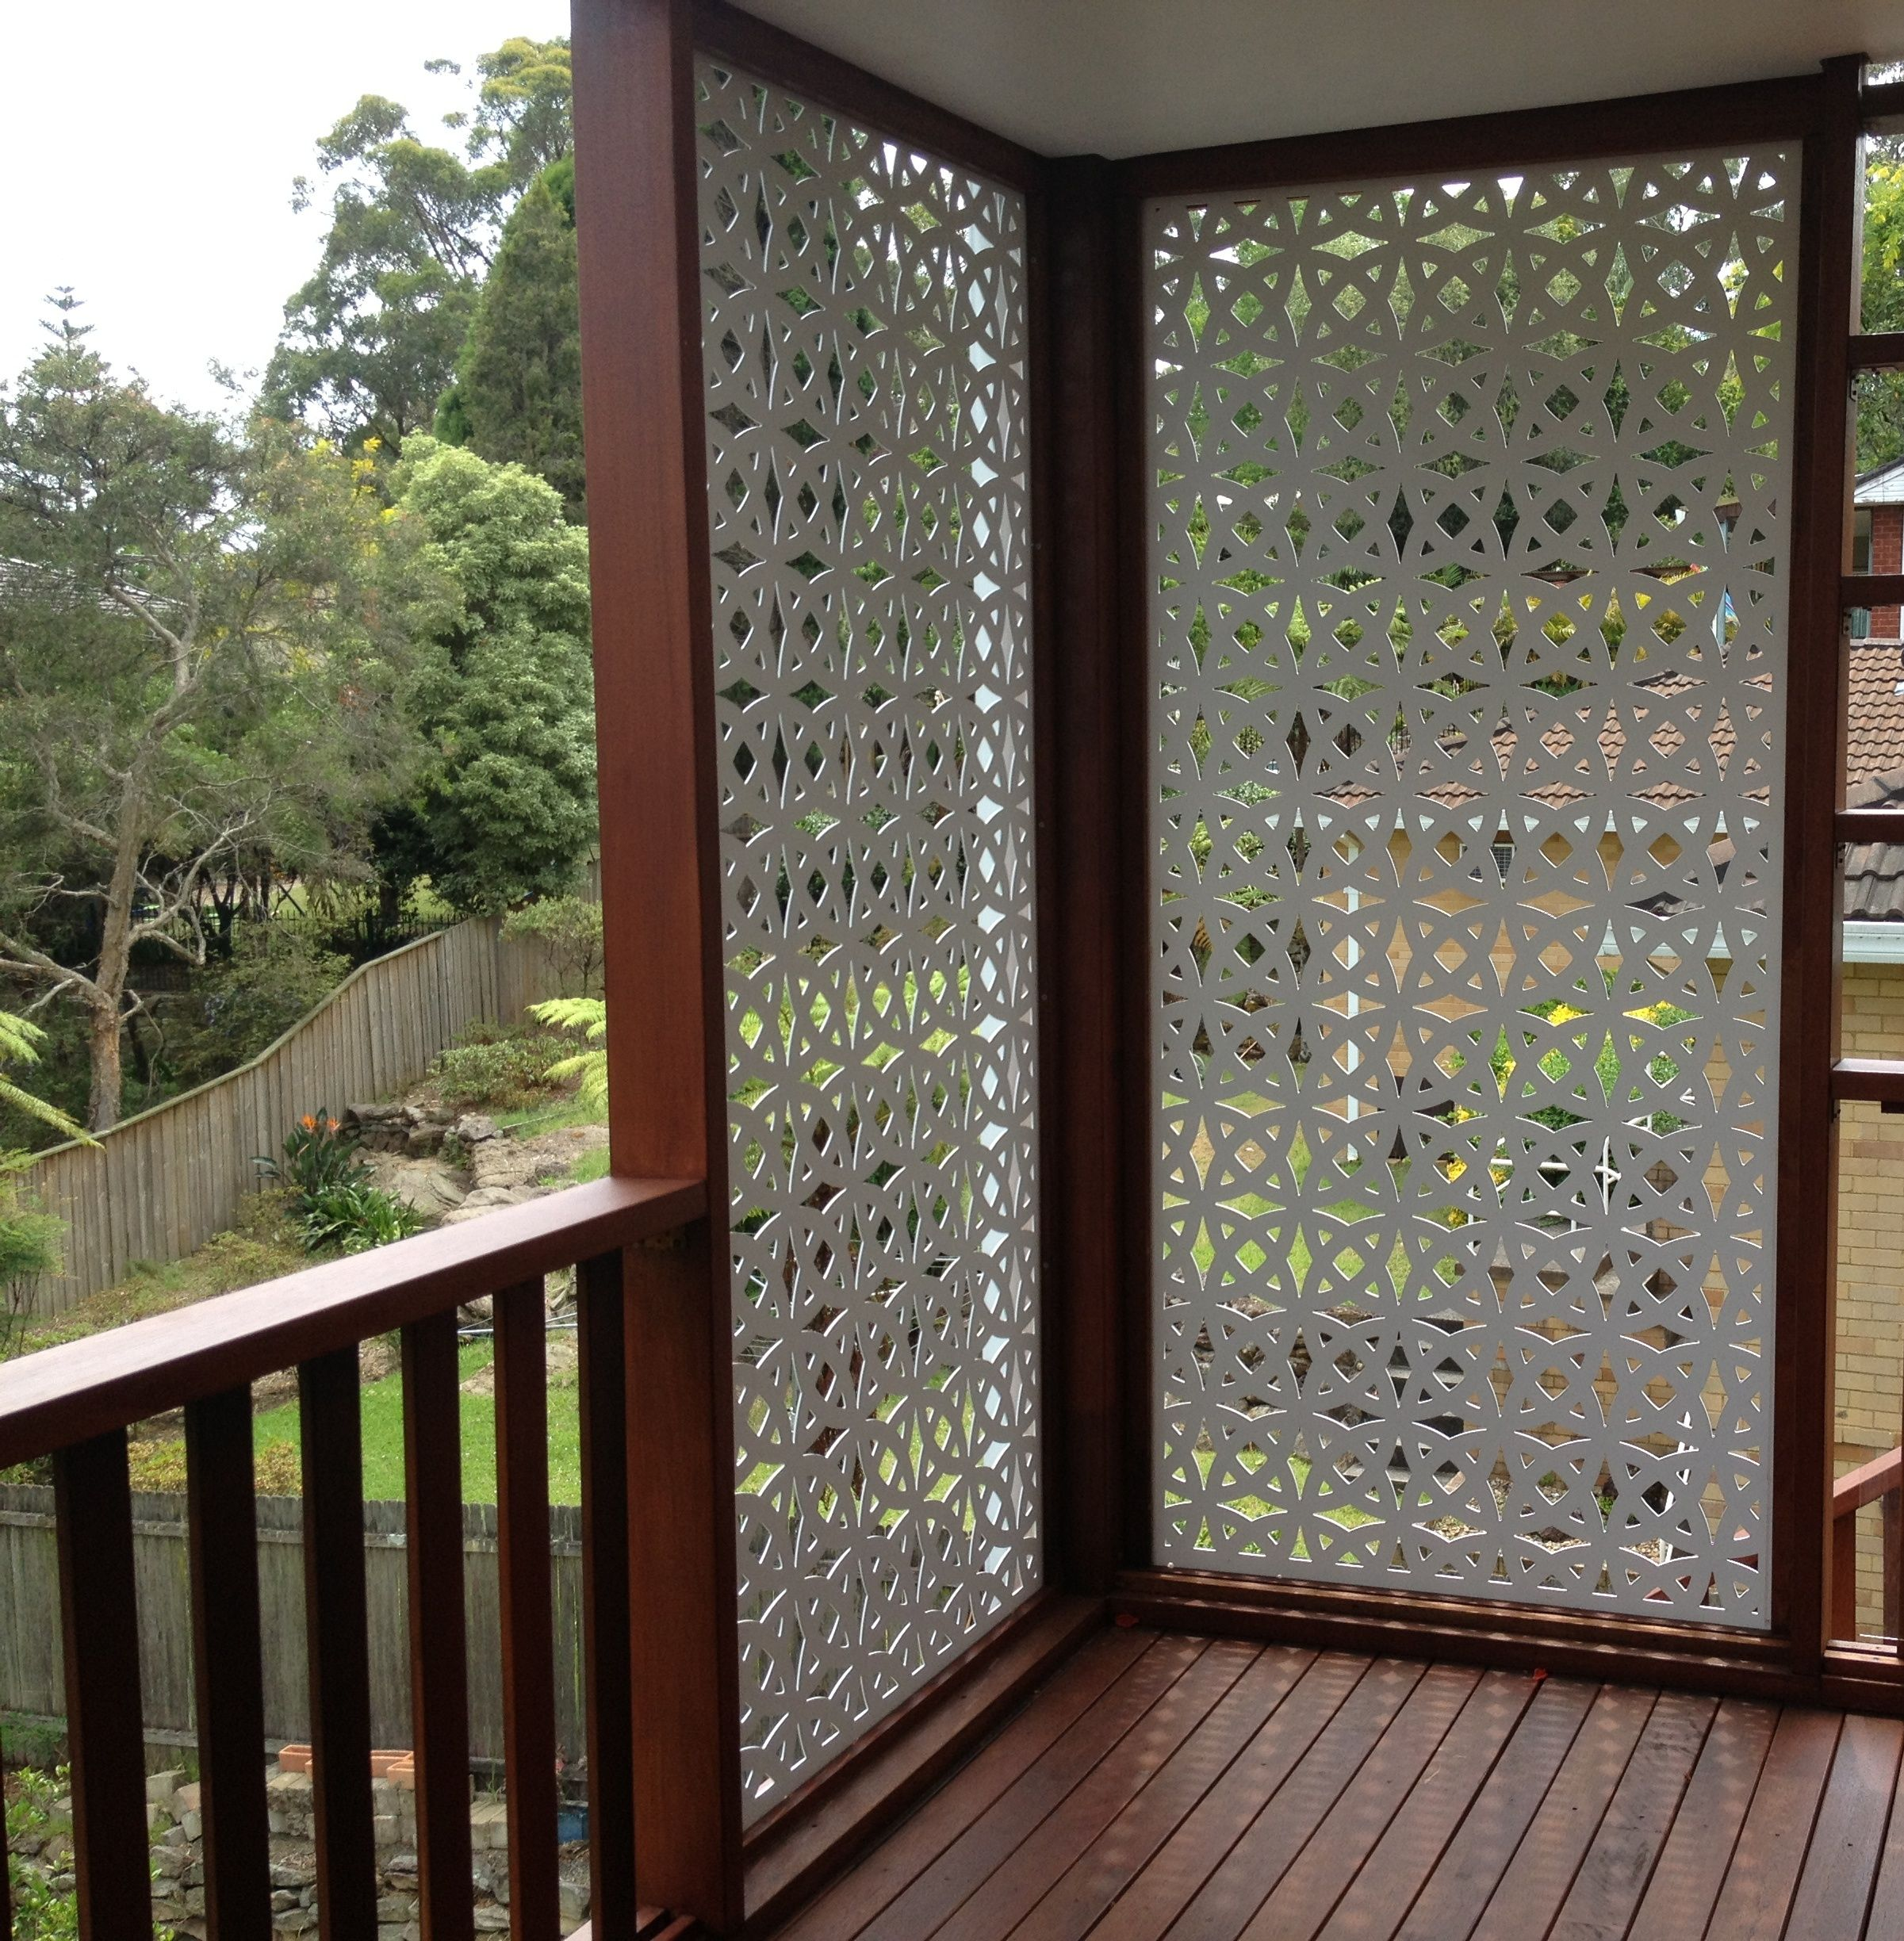 Timber panels timber privacy screens internal divider for Hanging privacy screens for decks